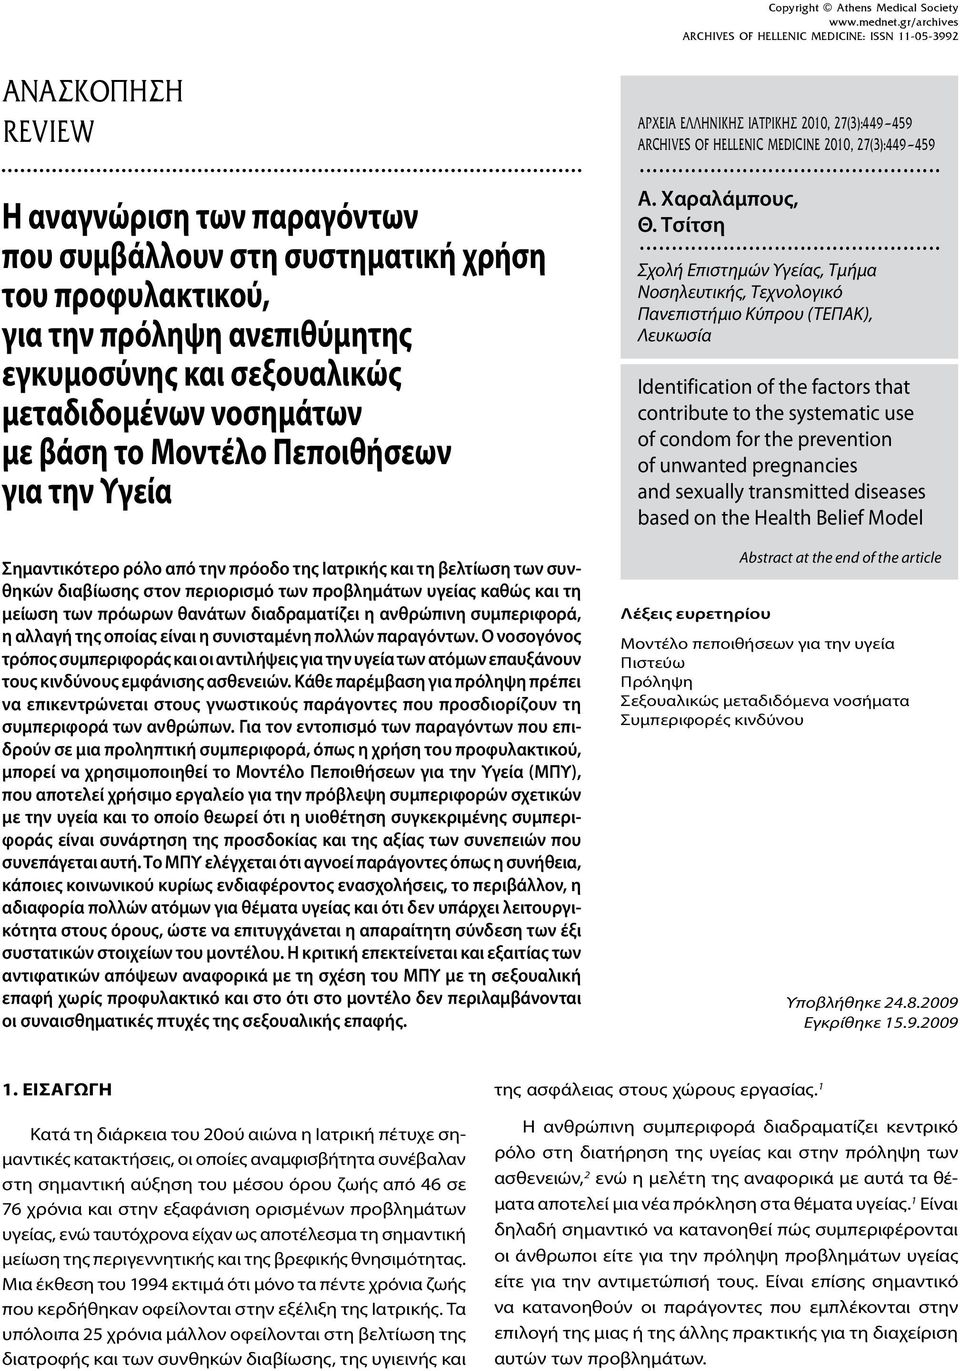 gr/archives ARCHIVES OF HELLENIC MEDICINE: ISSN 11-05-3992 ARCHIVES OF HELLENIC MEDICINE 2010, 27(3):449-459... Α. Χαραλάμπους, Θ. Τσίτση.